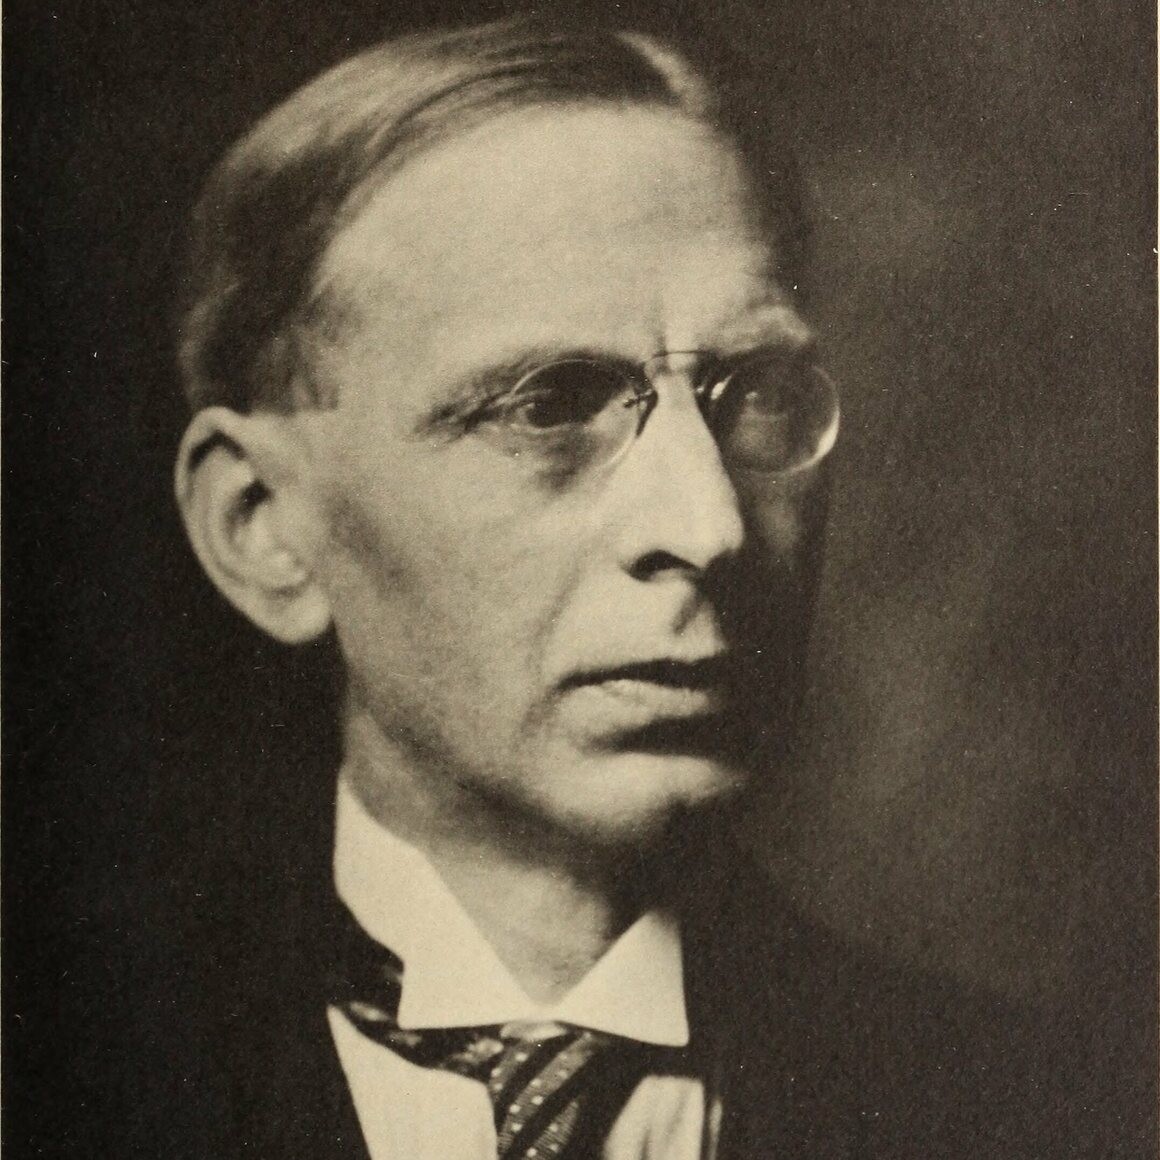 Berthold Laufer may not have understood how significant his recording experiment was.